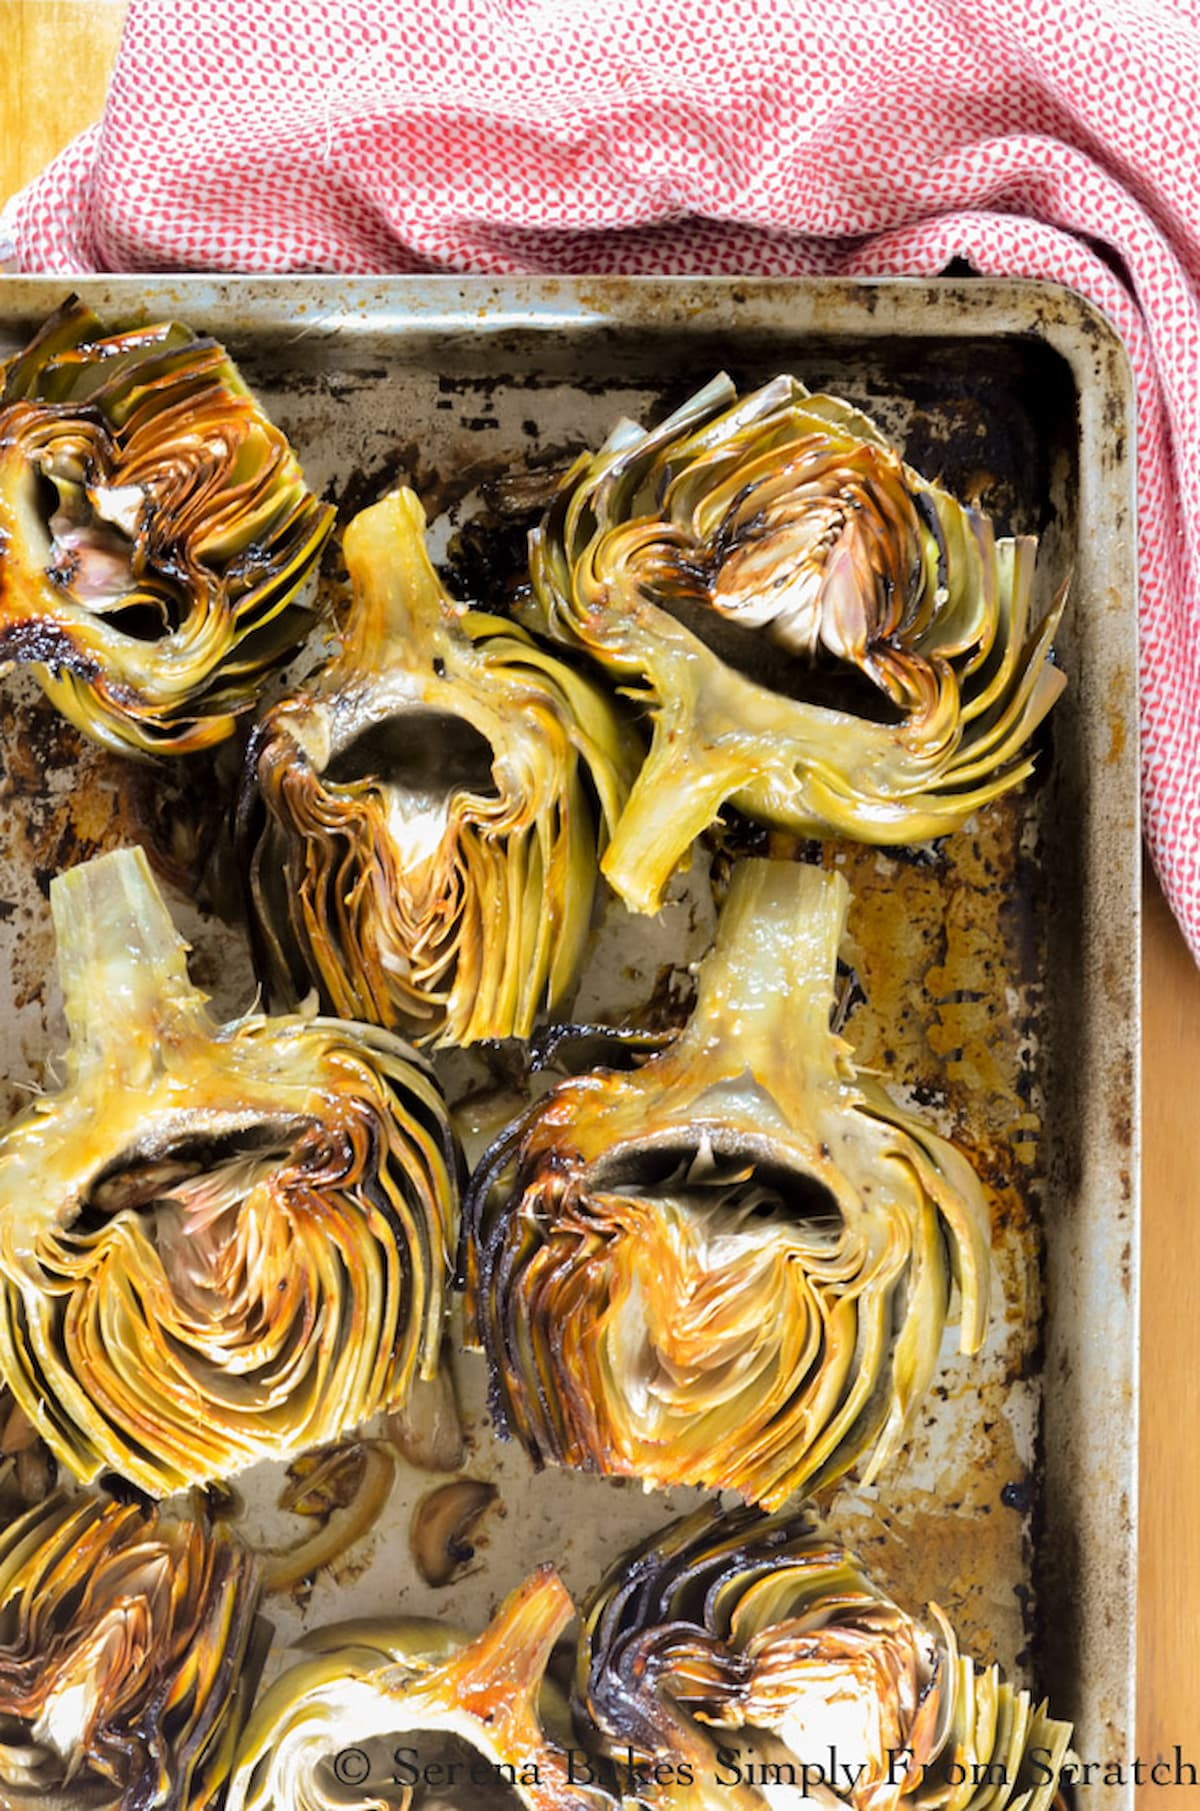 Roasted Artichokes with garlic on a baking tray with cut lemon.